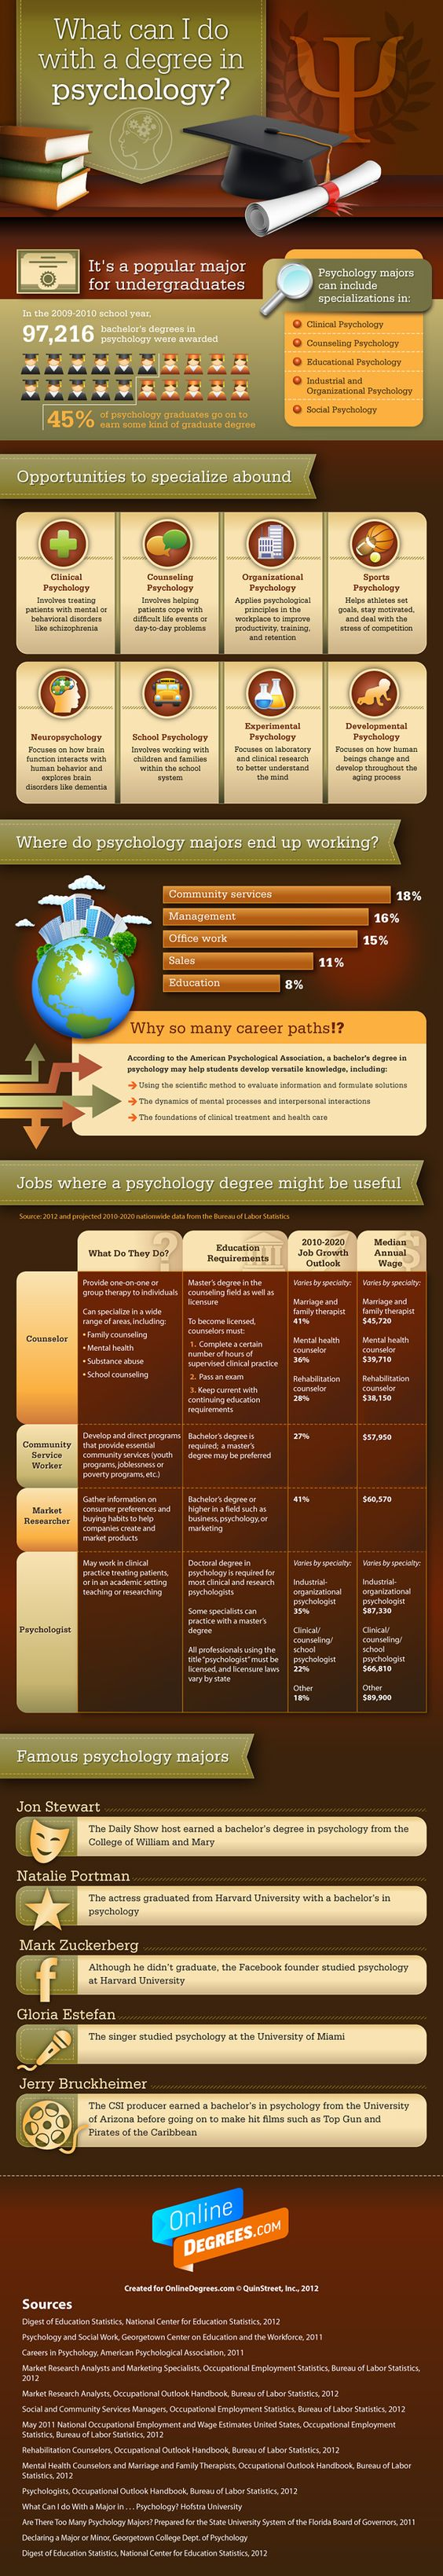 Is it better to major in math or psychology?